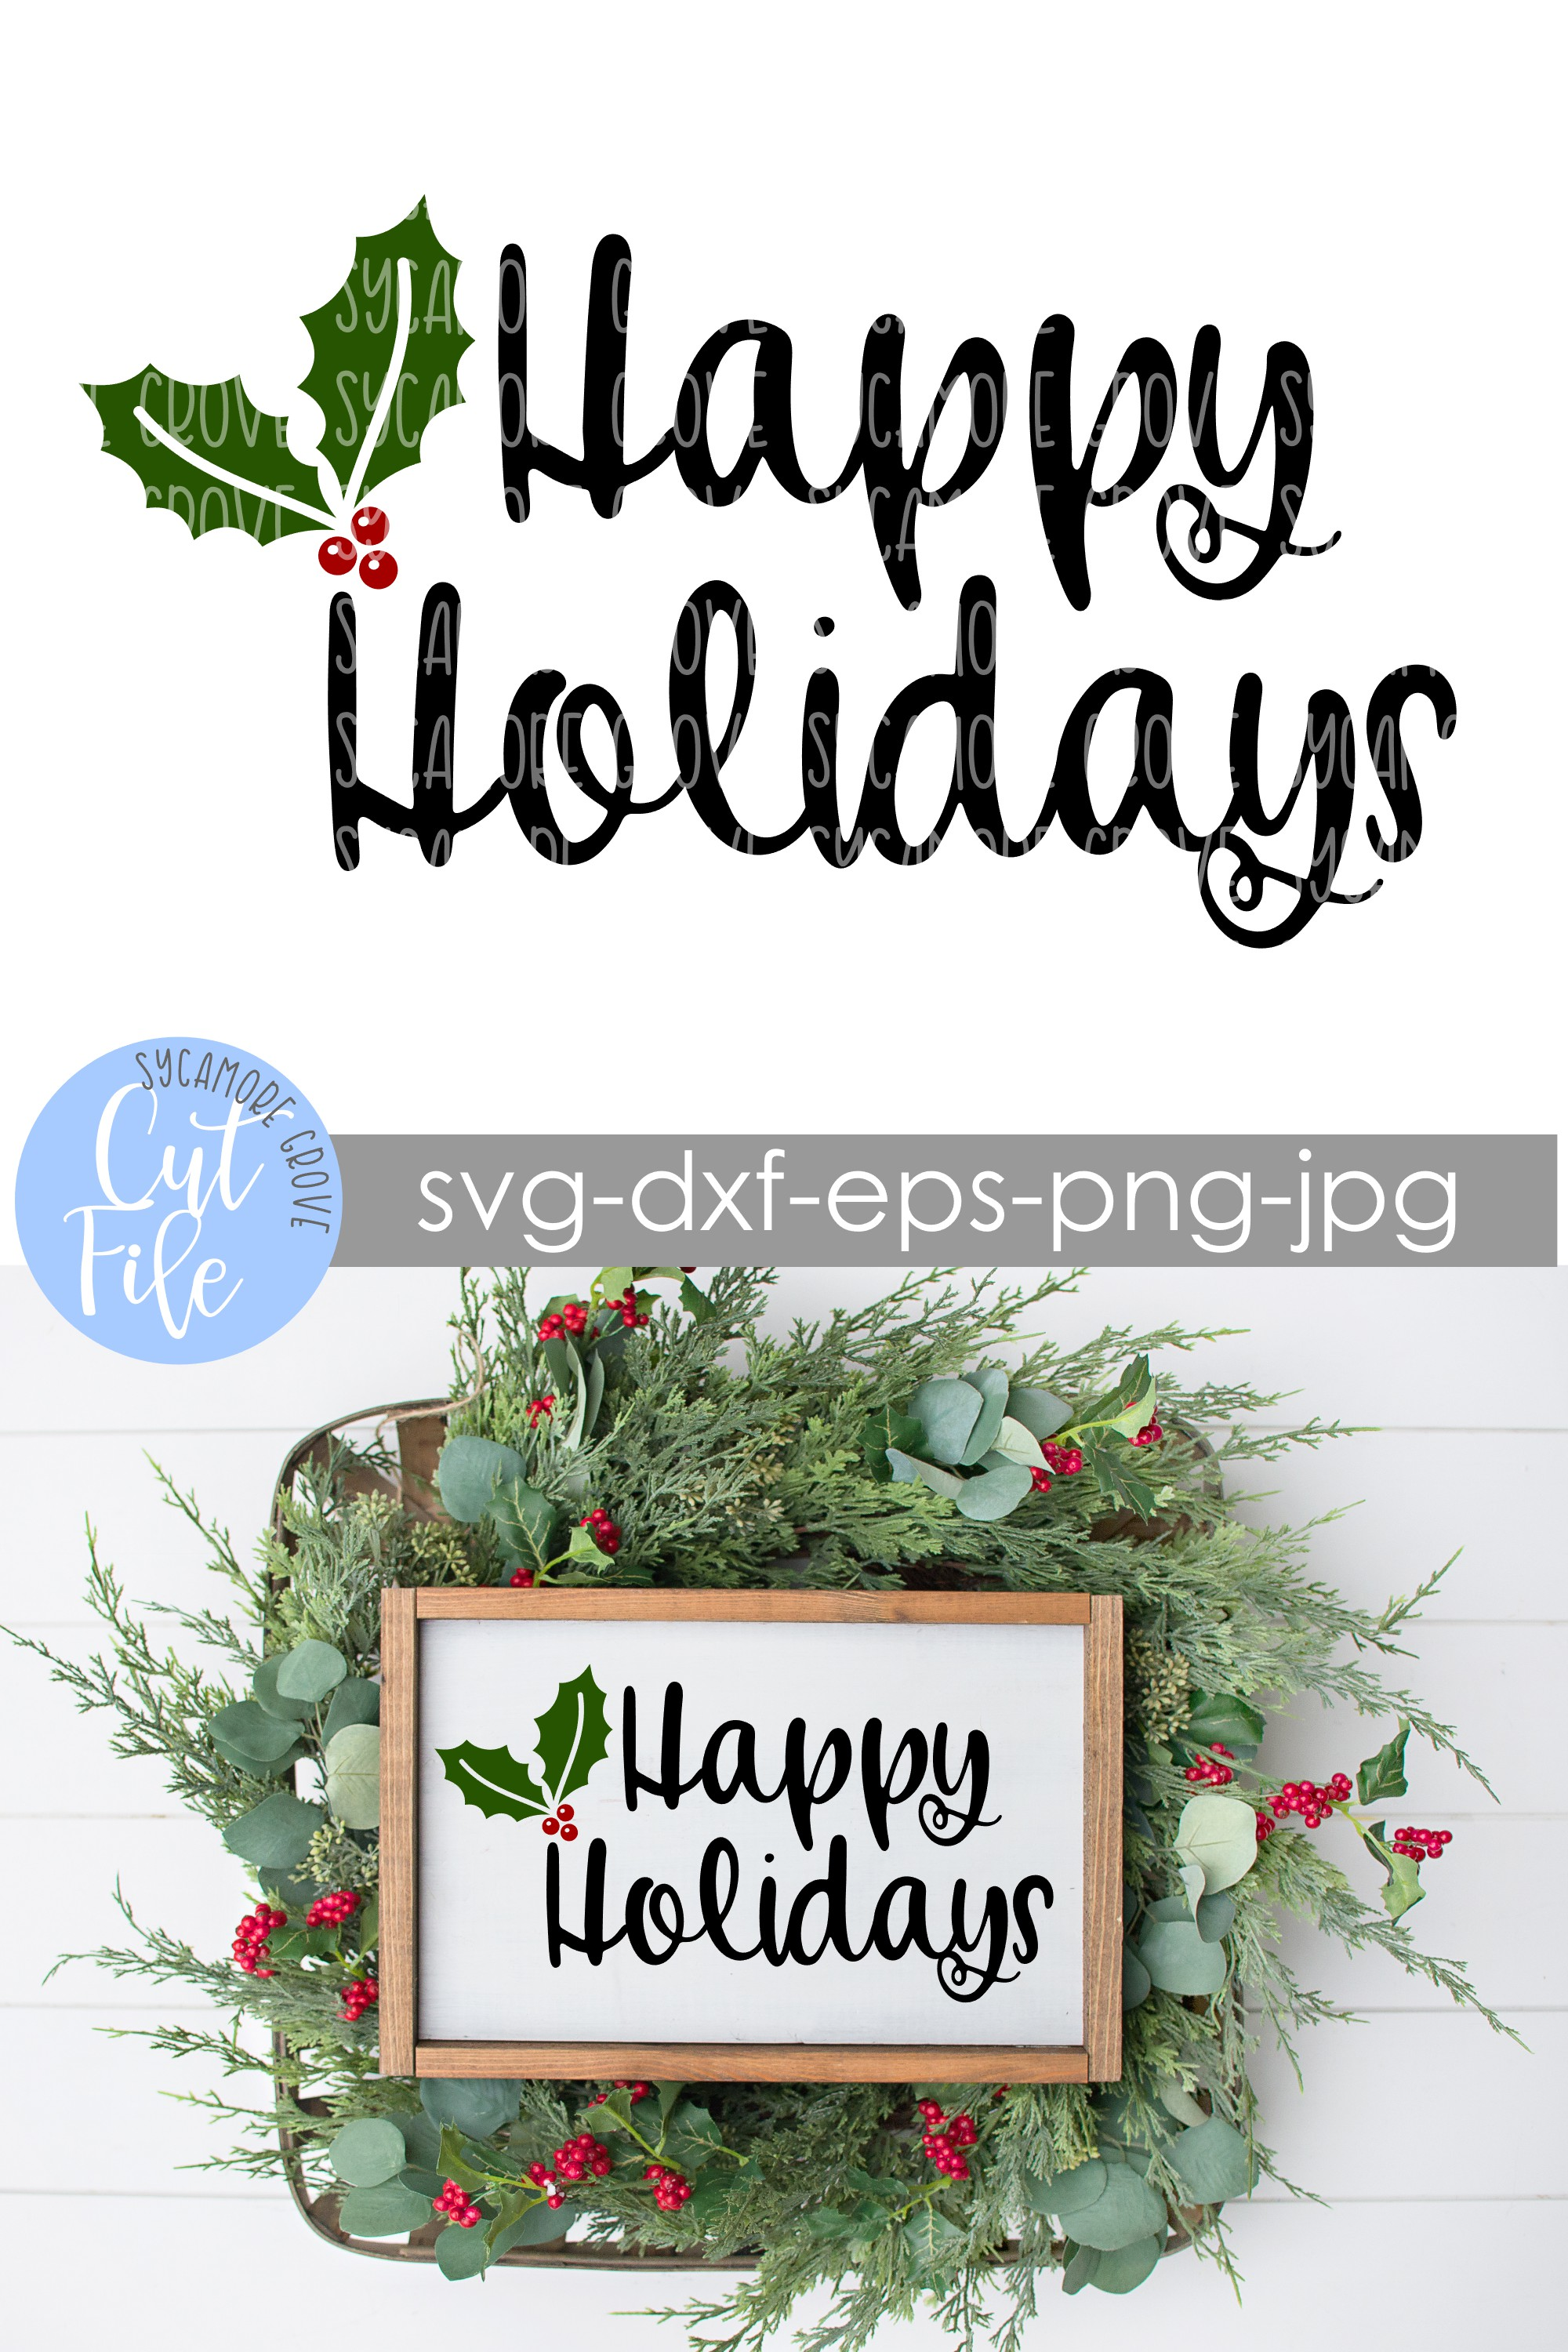 Happy Holidays SVG example image 5